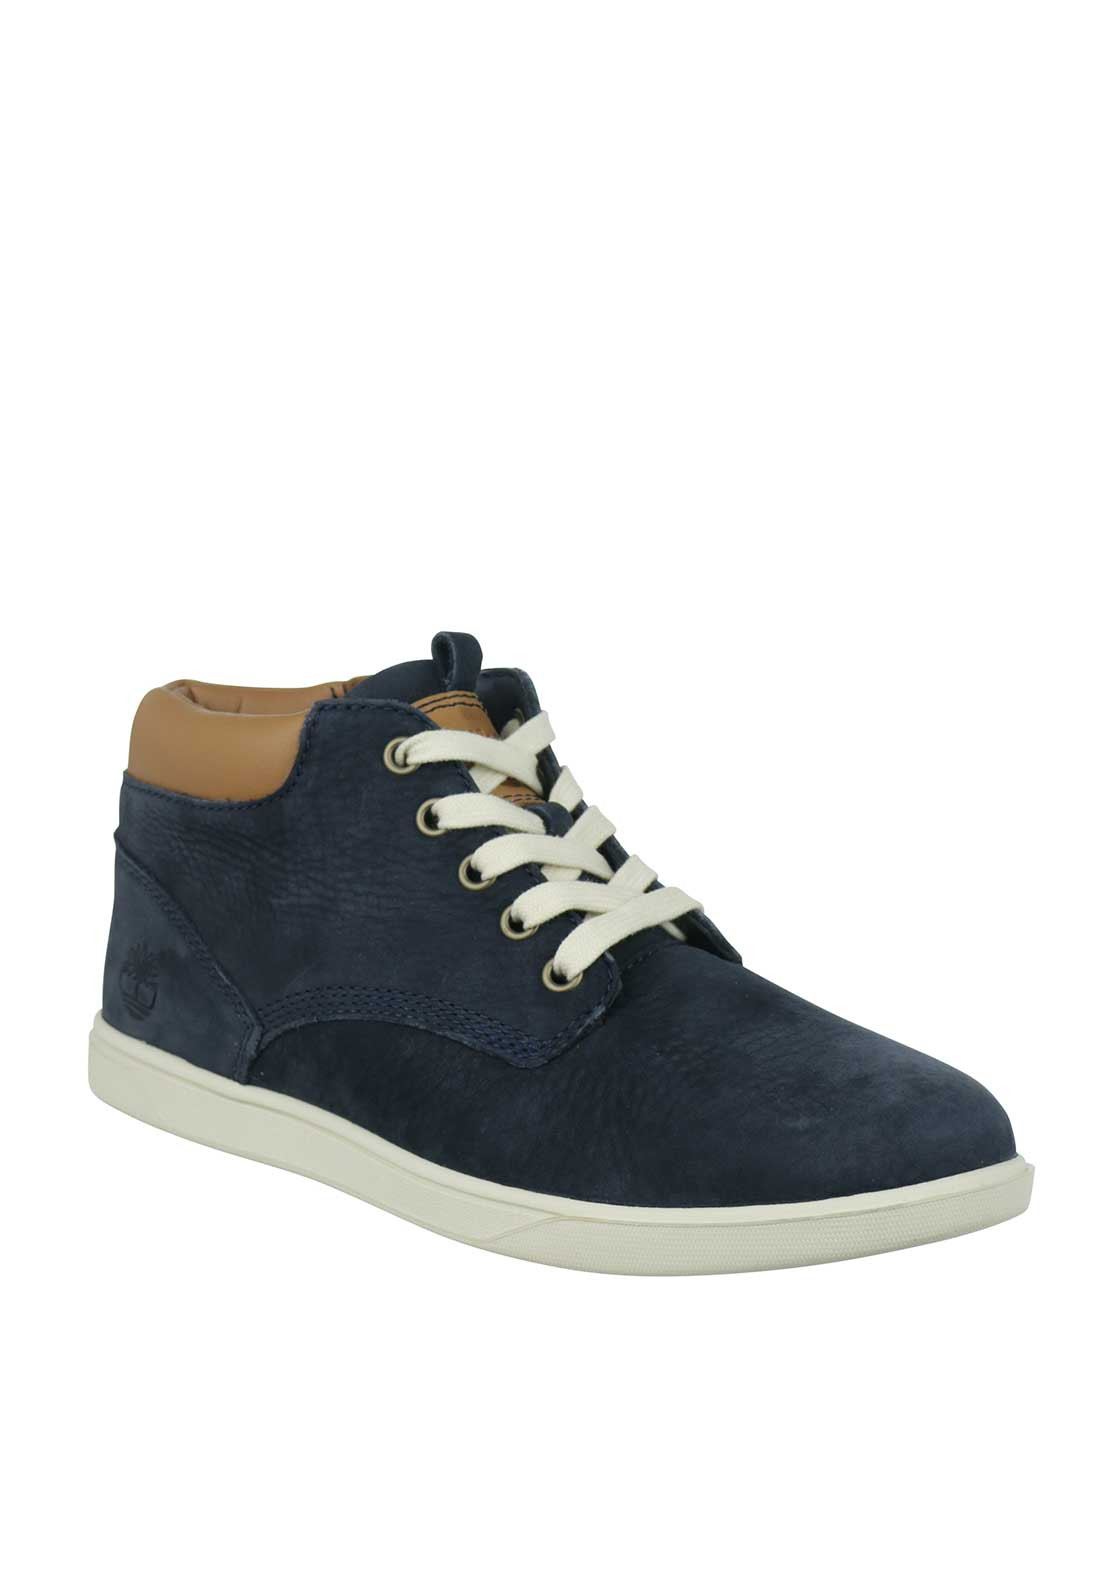 Timberland Boys Leather Hi Top Trainers, Navy